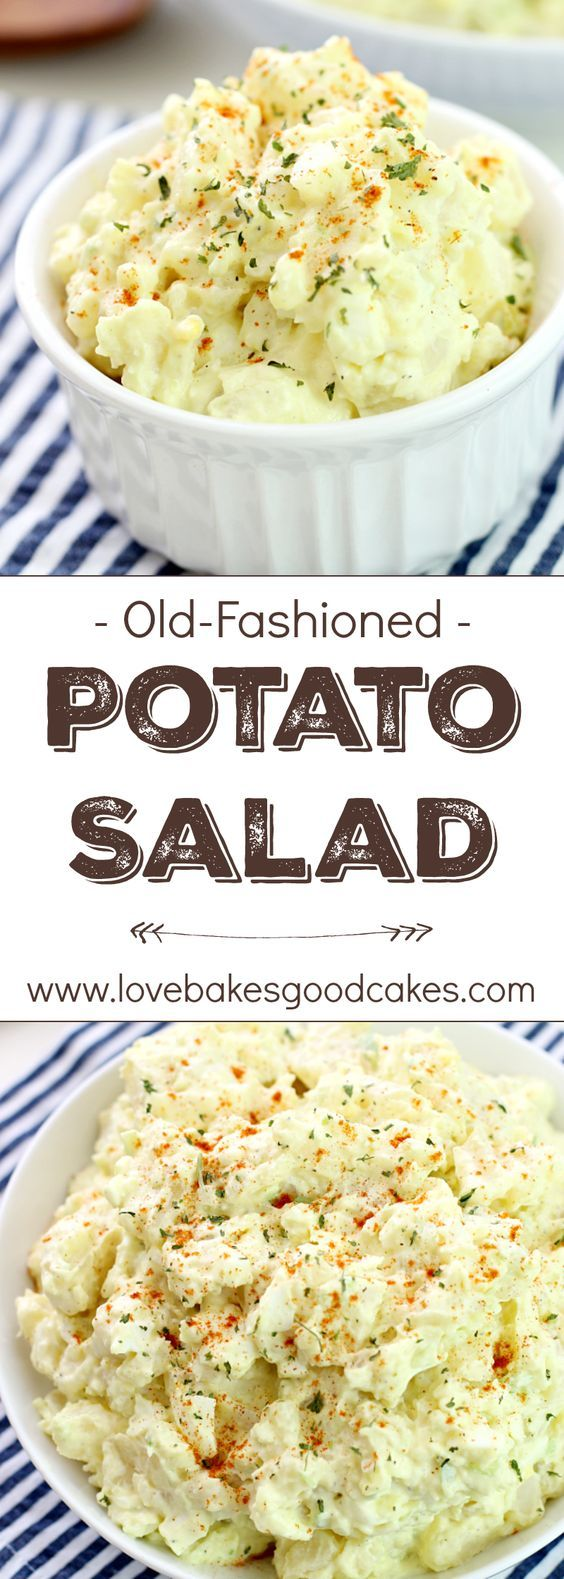 Old-Fashioned Potato Salad ~ sometimes simple is best, and this classic potato salad recipe tastes just like grandma made it!